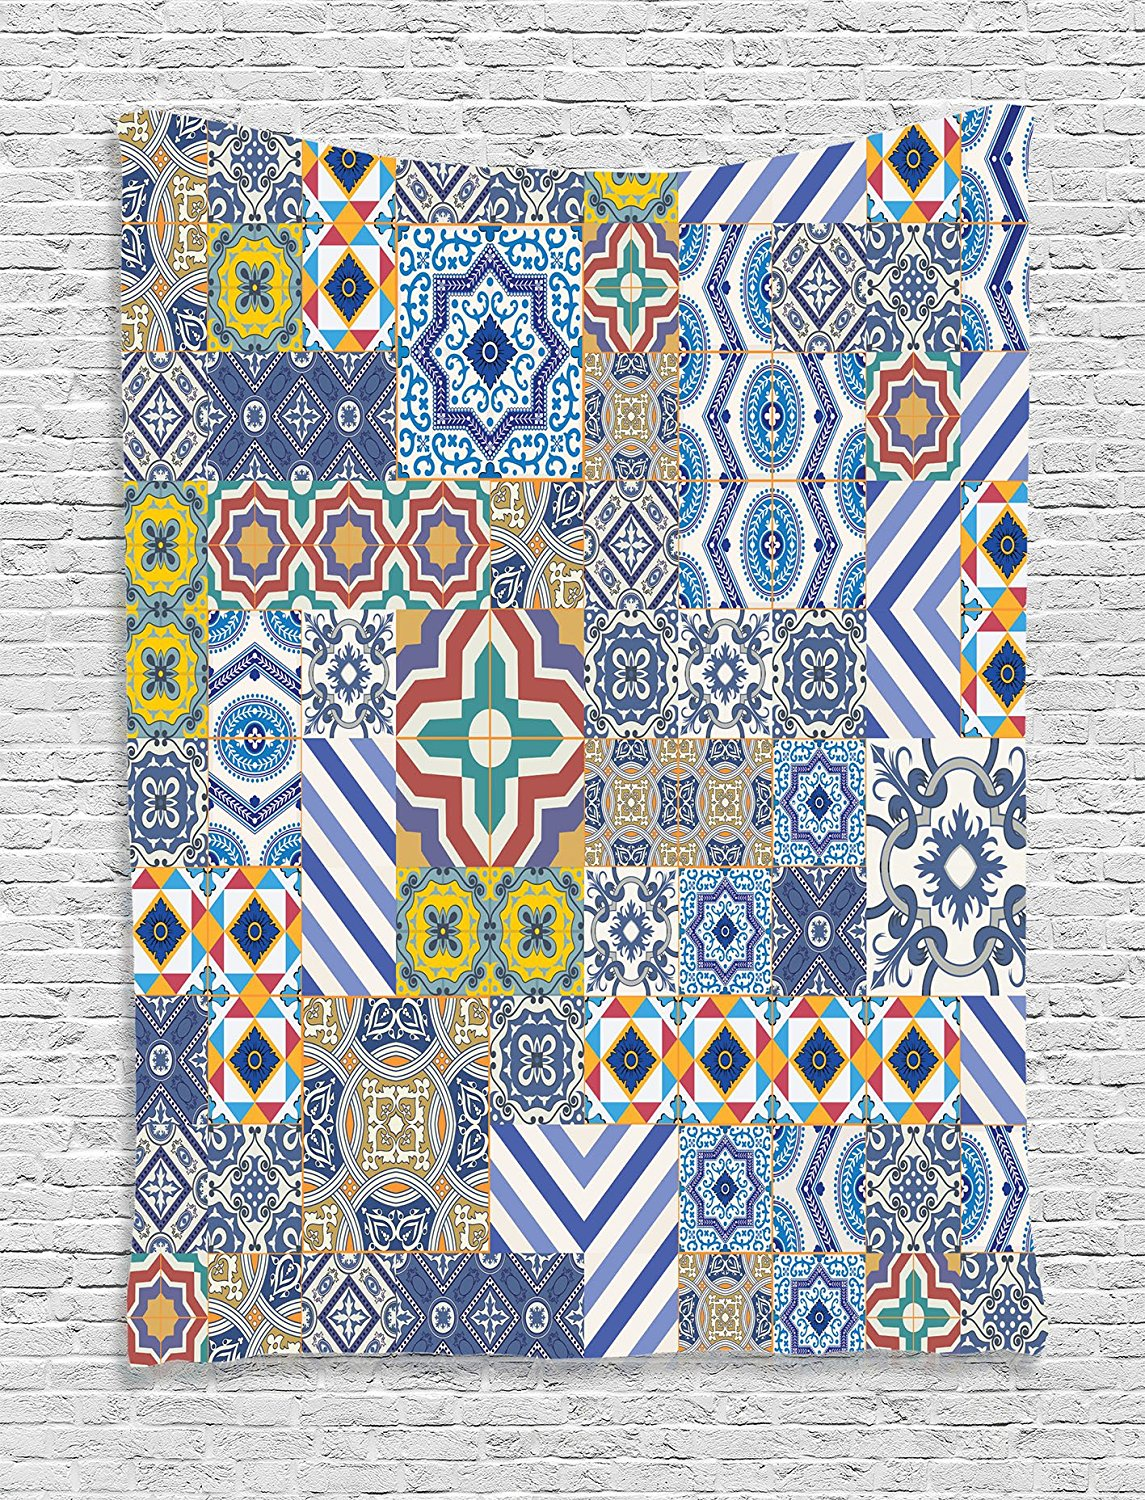 Ambesonne Moroccan Decor Collection, Moroccan Classic Mosaic Tile Inspired Patchwork Style Pattern Artwork Print, Bedroom Living Room Dorm Wall Hanging Tapestry, Blue Mustard